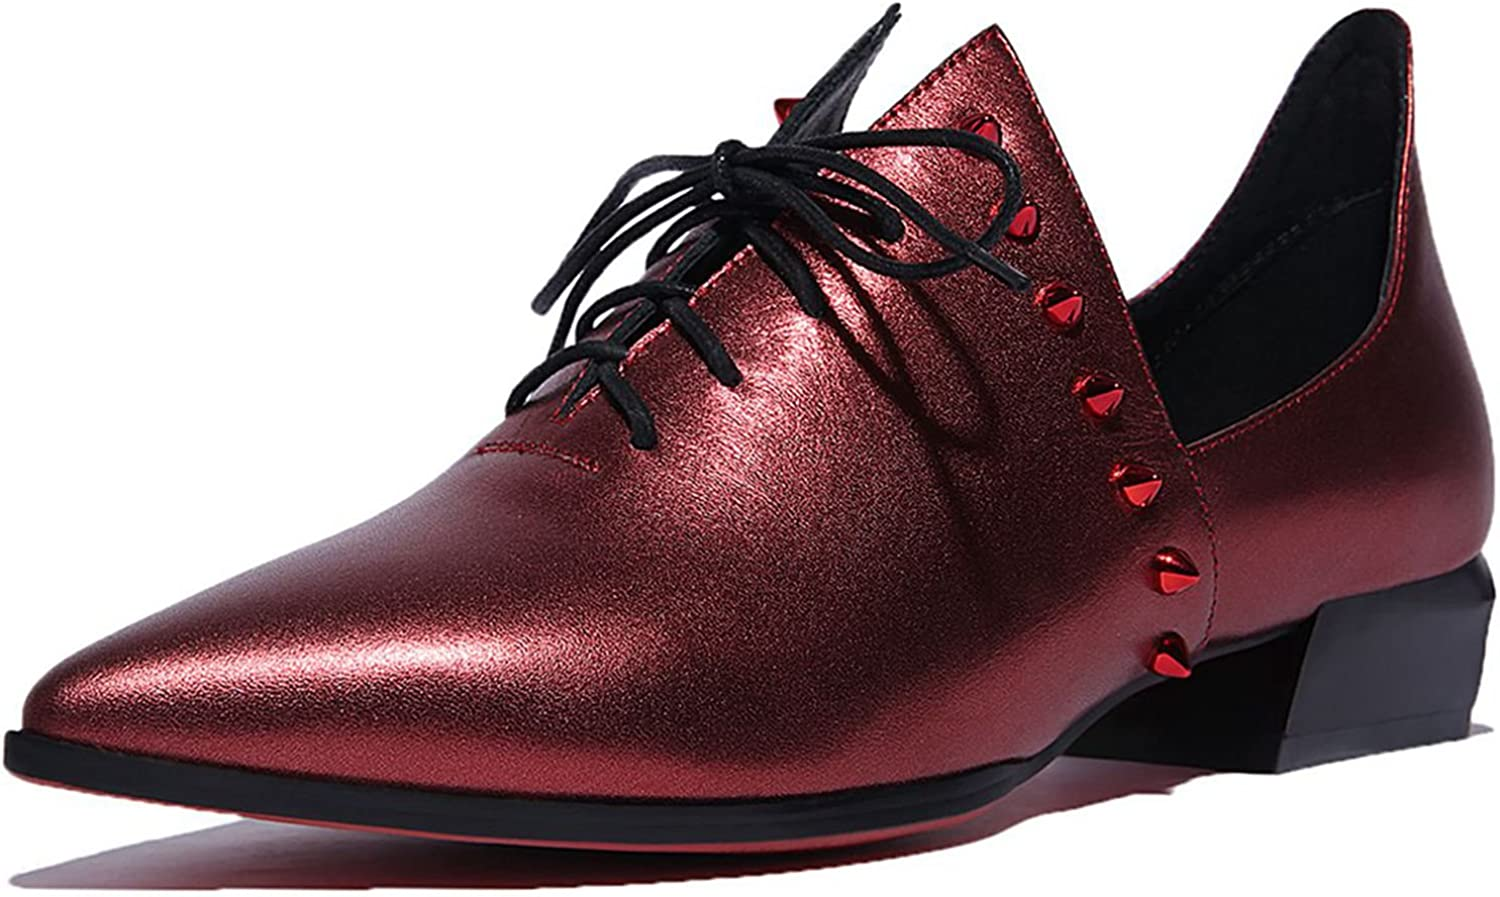 Vimisaoi Womens Rivet Genuine Leather Lace up Pointed Toe Loafers Shoes Oxfords